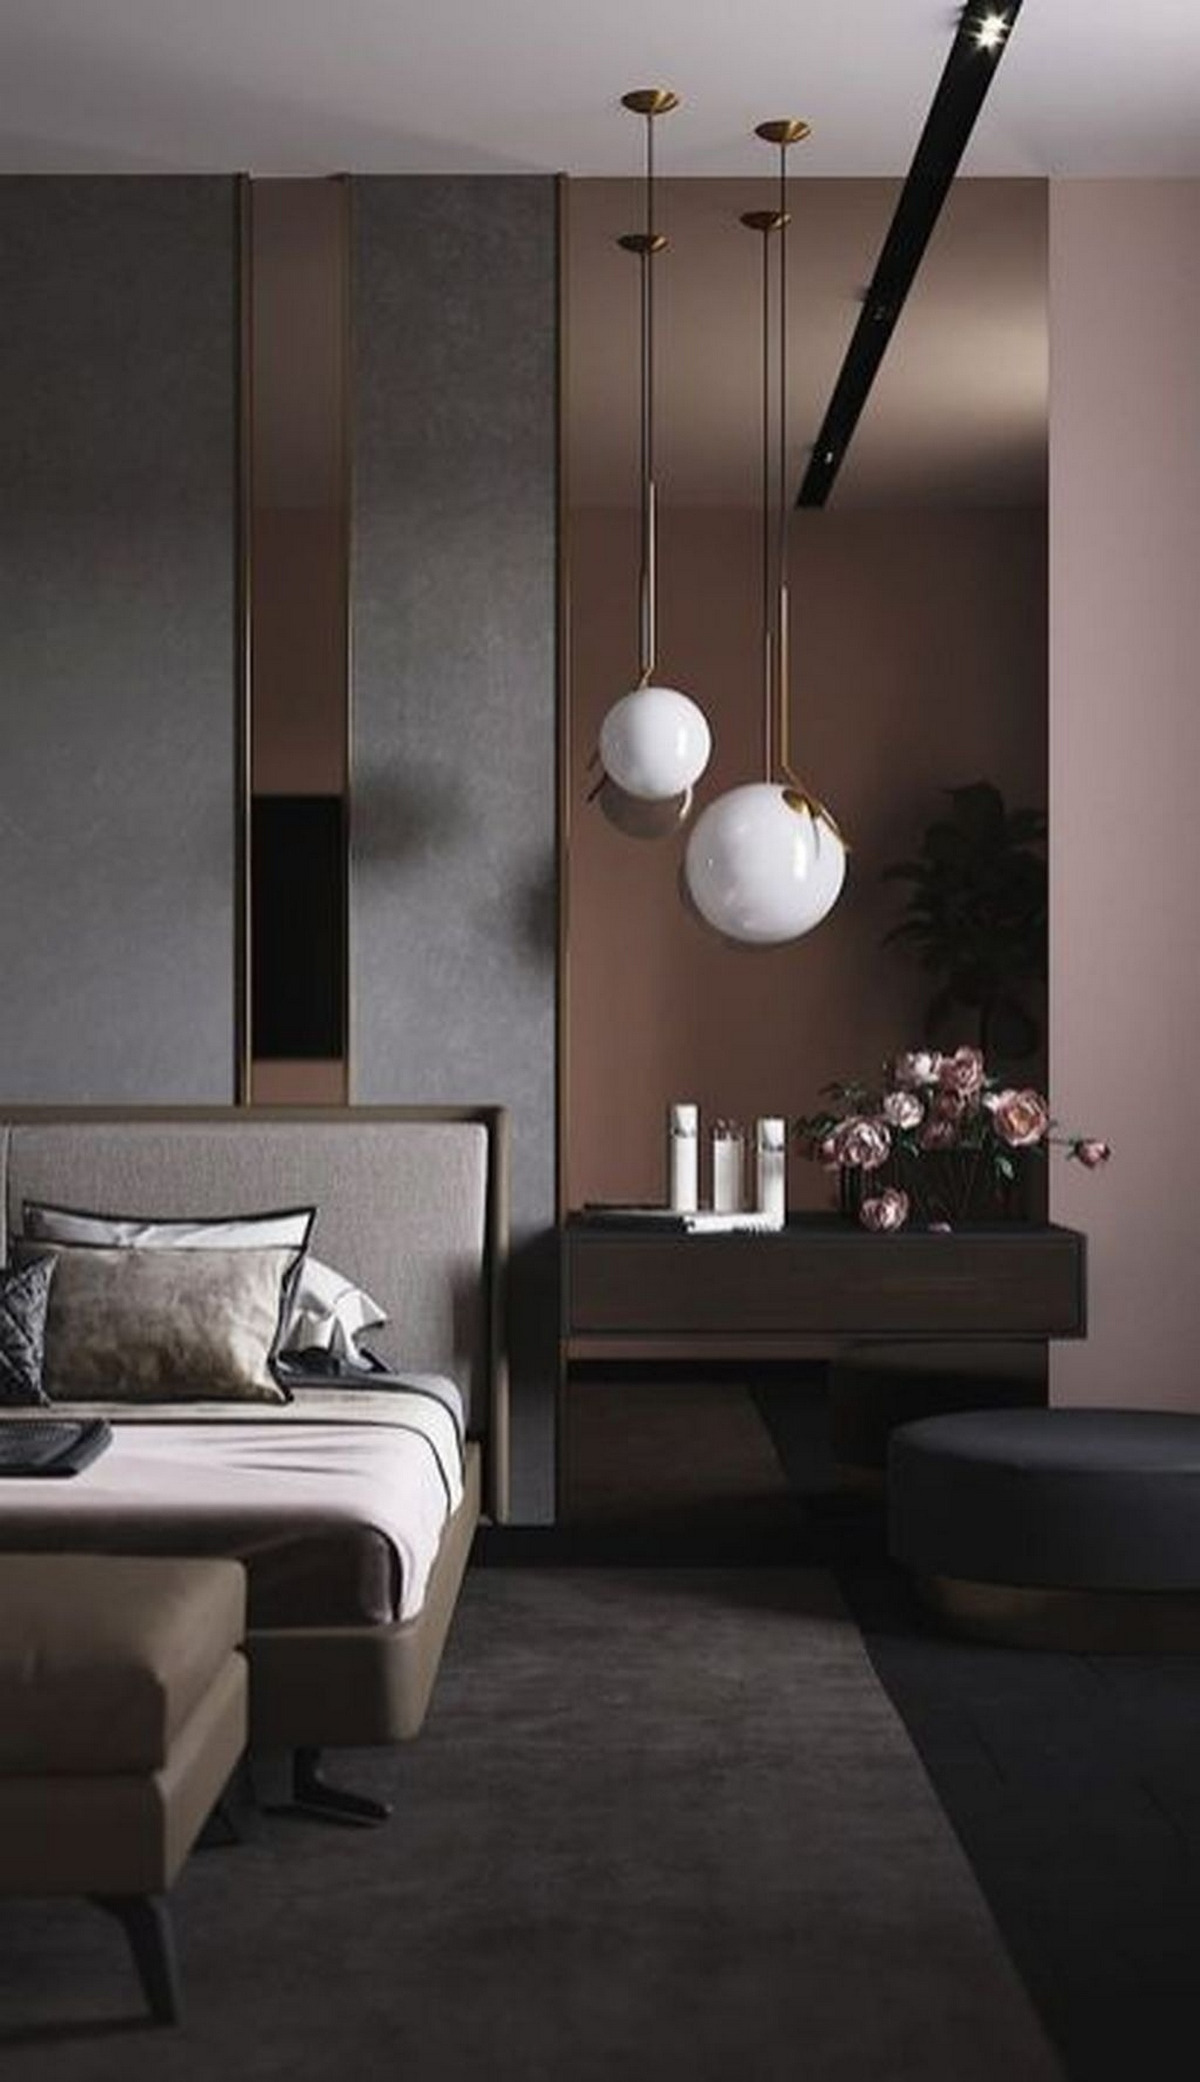 22 Beautiful Modern Bedroom Designs Ideas For Your Home 22